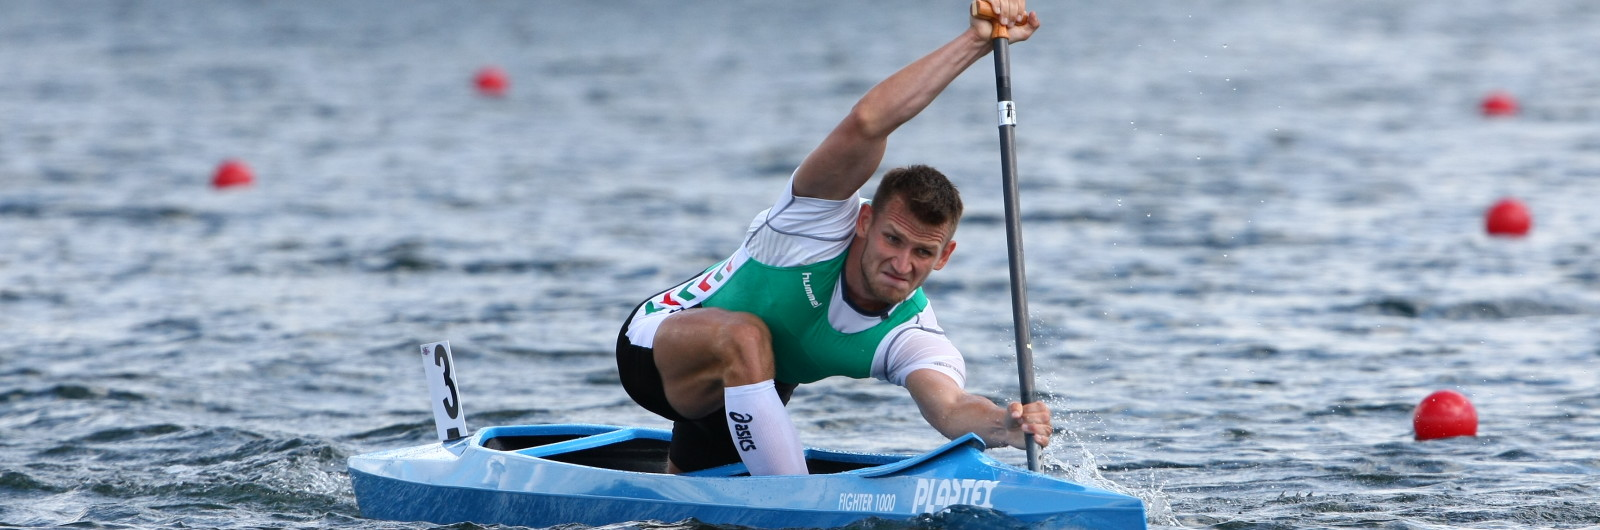 Olympic canoe sprint2